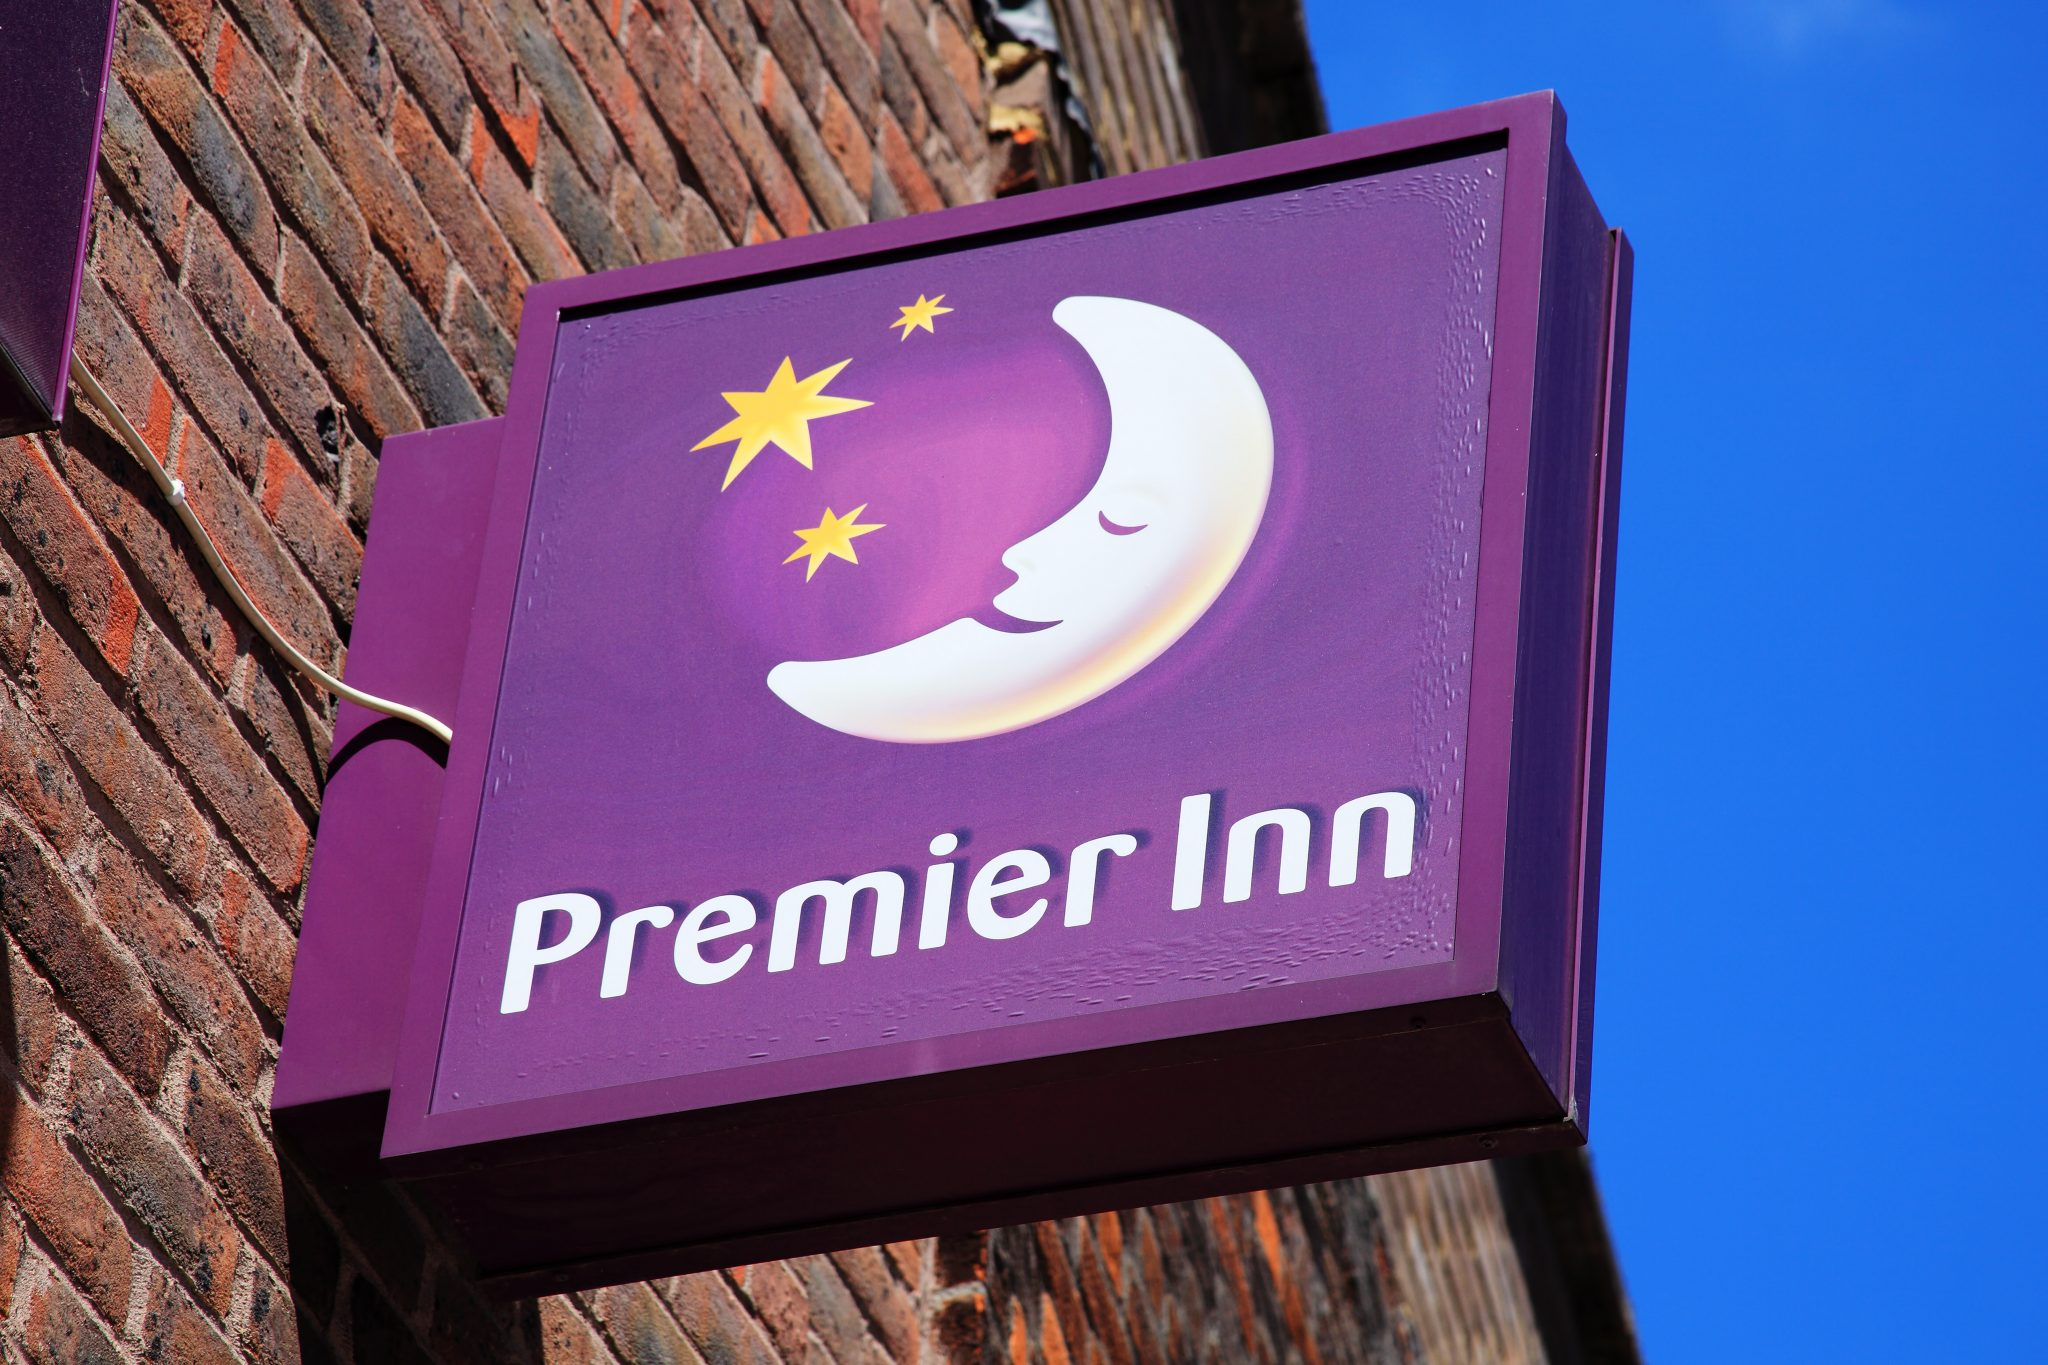 Premier Inn Logo on Outdoor Sign